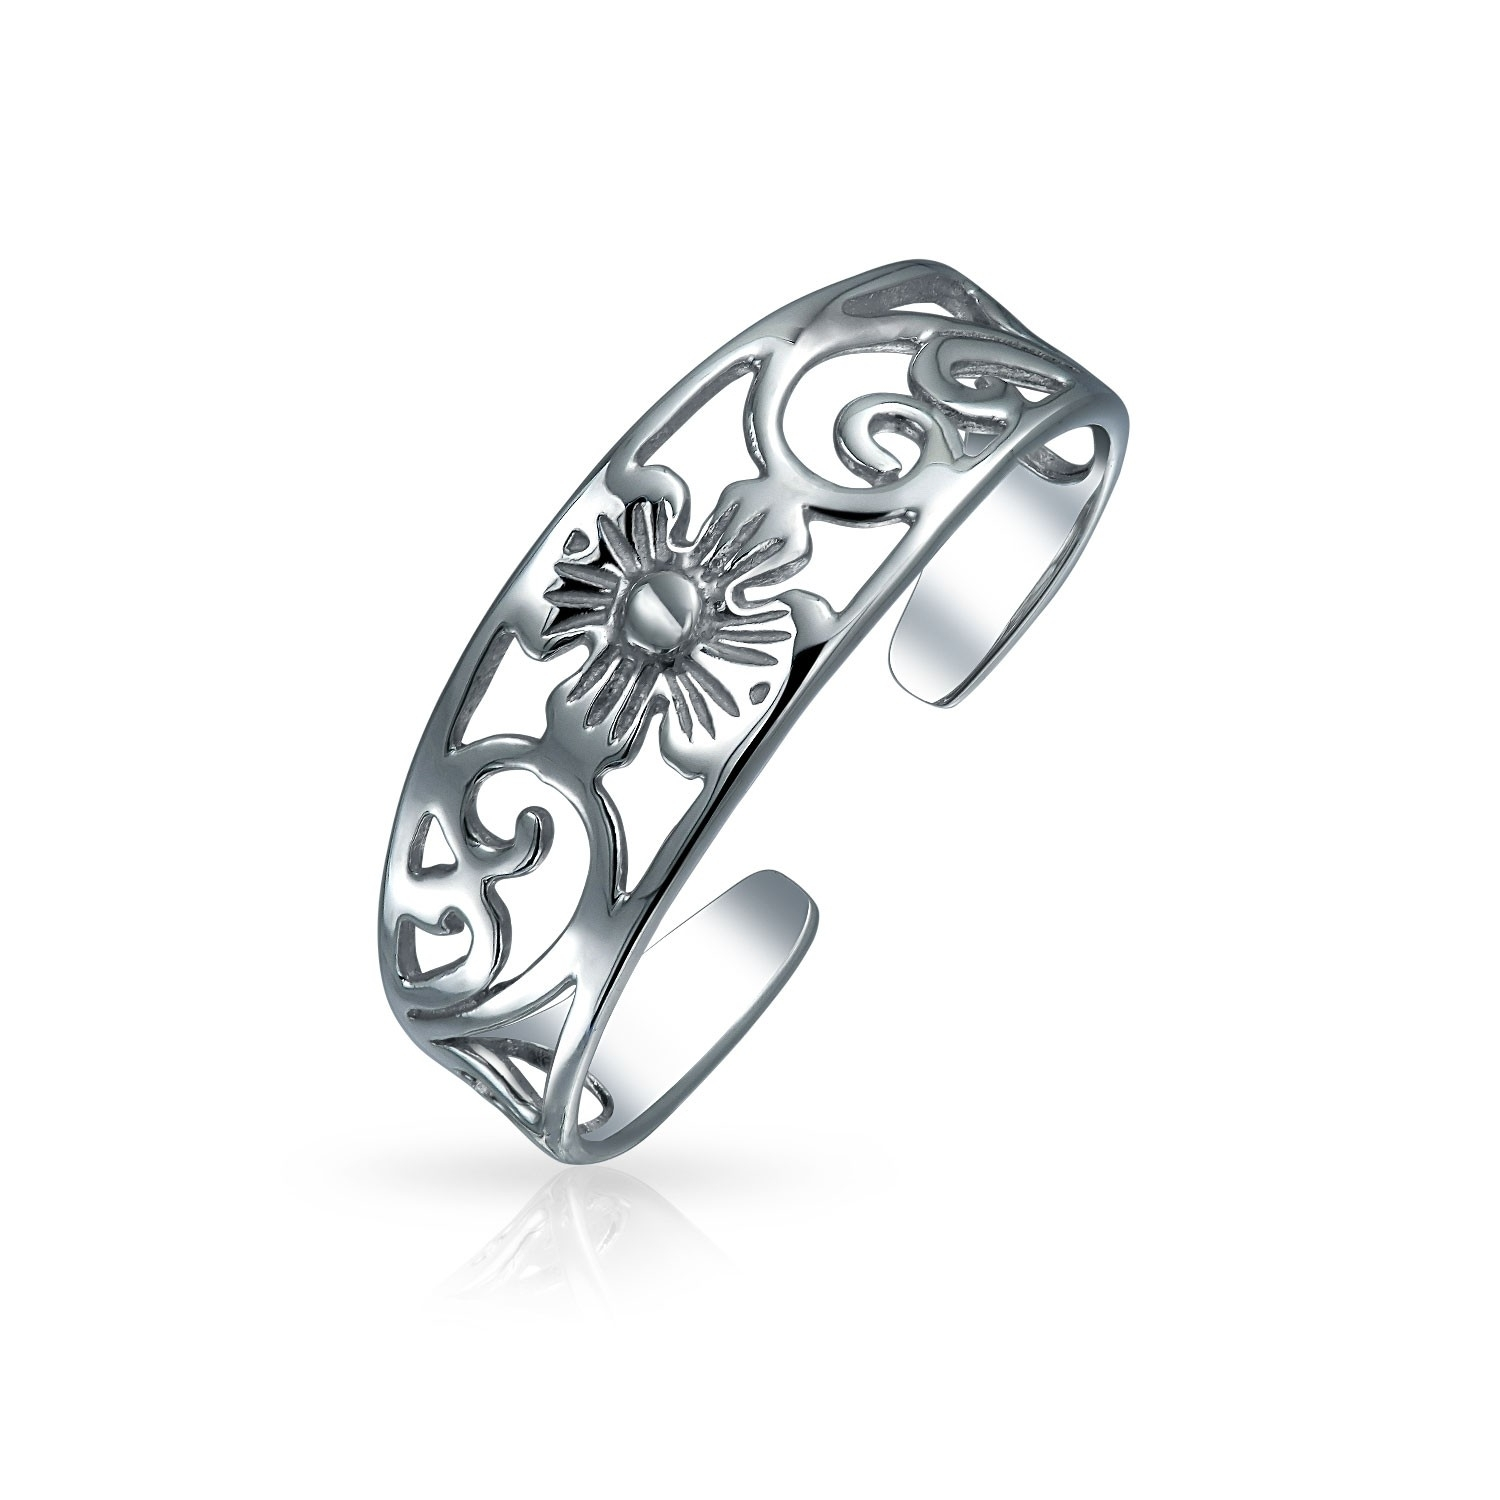 Adjustable Filigree Flower Toe Ring 925 Sterling Silver Midi Rings With Regard To Most Current Sterling Toe Rings (View 4 of 15)